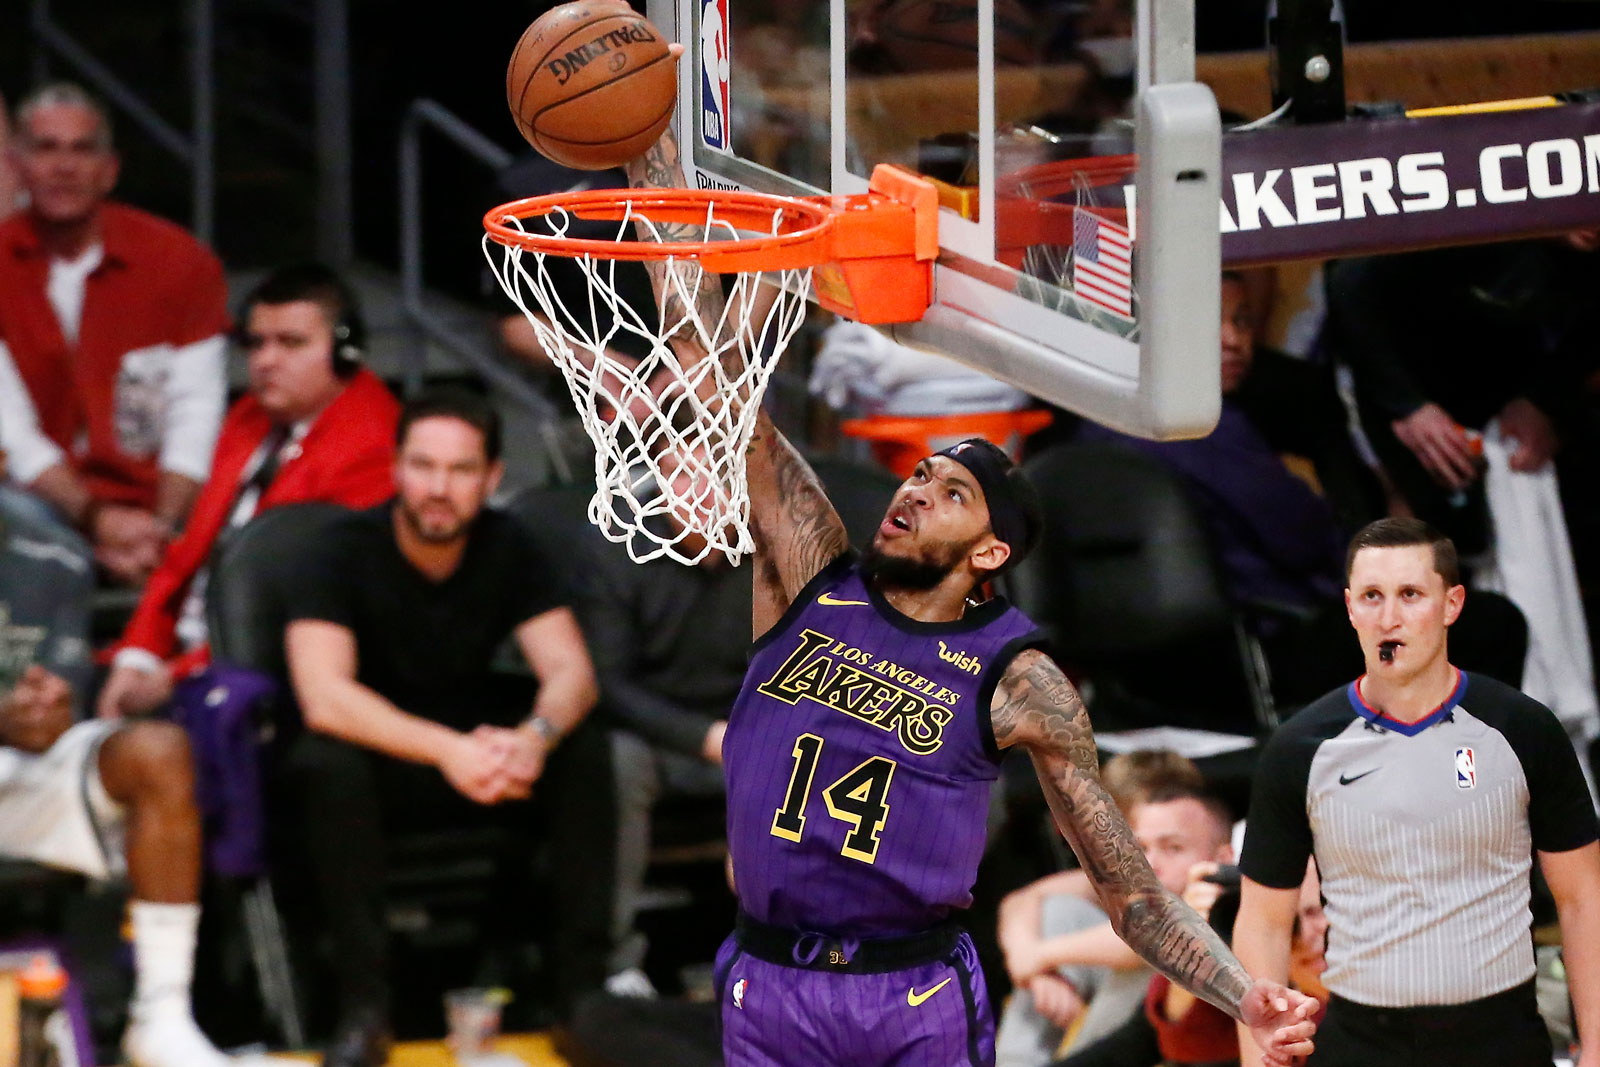 Brandon Ingram #14 of the Los Angeles Lakers dunks the ball against the Milwaukee Bucks on March 1 2019 at STAPLES Center in Los Angeles, California.